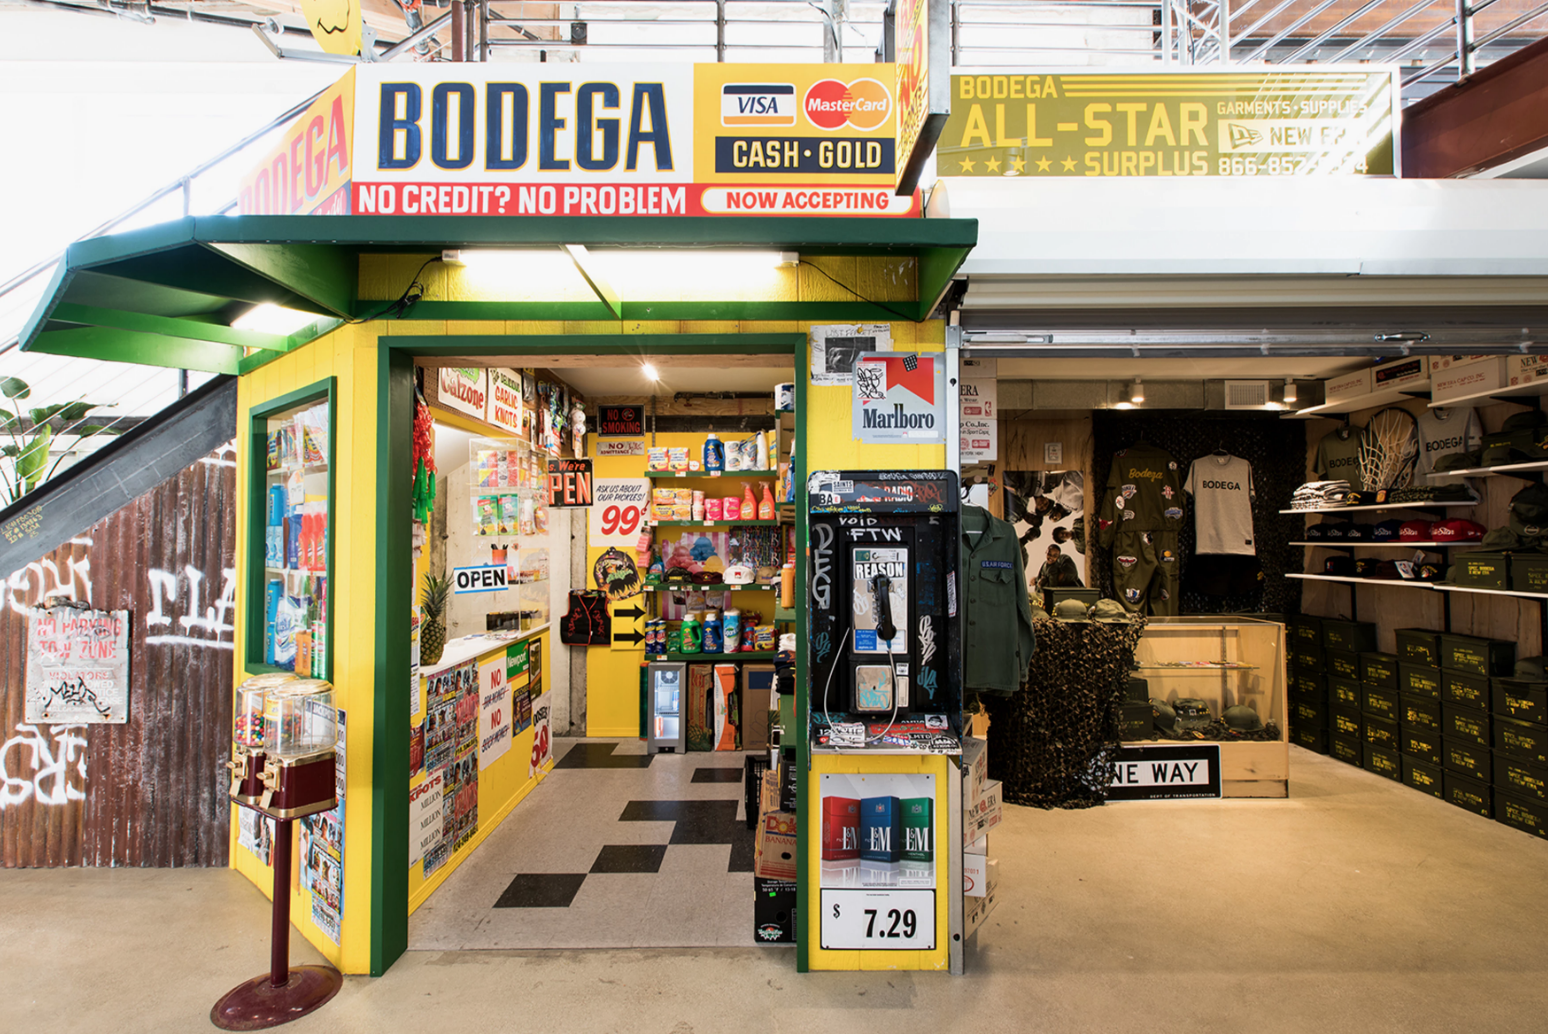 Bodega - A streetwear boutique recognized as one of the top in the world. Hidden in plain sight.https://shop.bdgastore.com/📍1320 E 7th St suite 150, Los Angeles, CA 90021